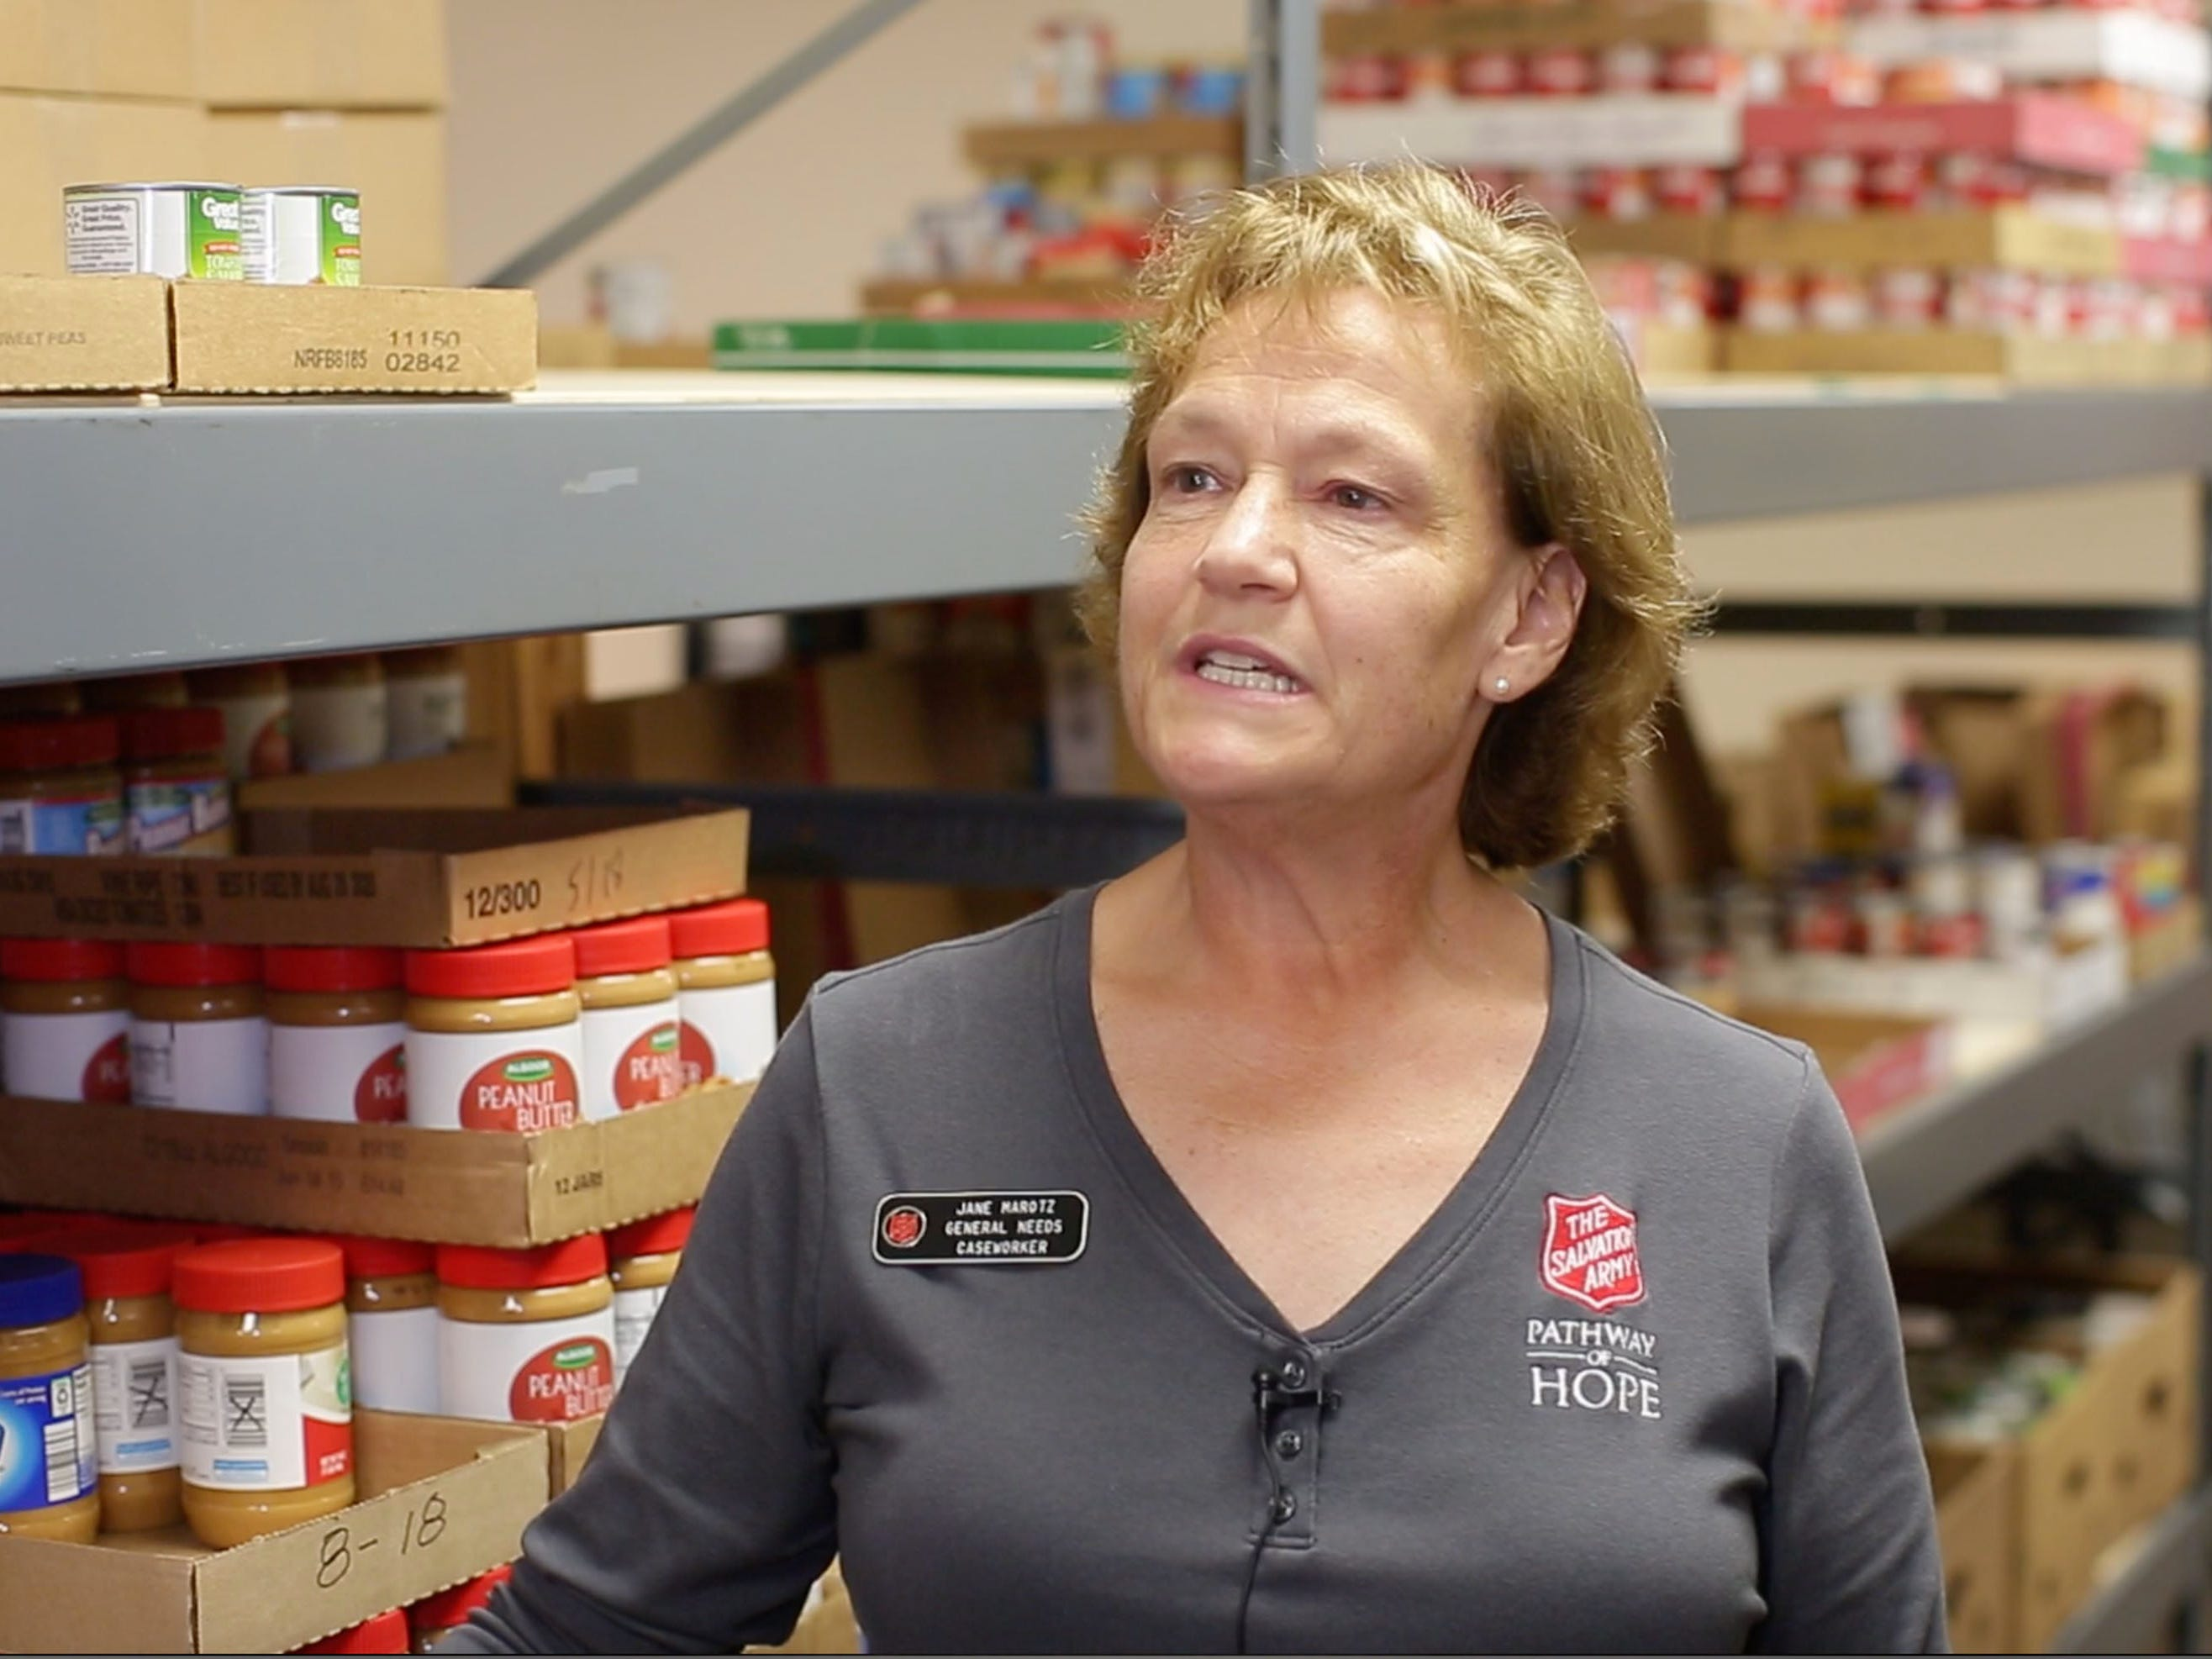 Salvation Army General Needs Case Worker Jane Marotz, speaks to the media while standing near the shelves in the food pantry at the facility, Thursday, September 20, 2018, in Sheboygan, Wis.